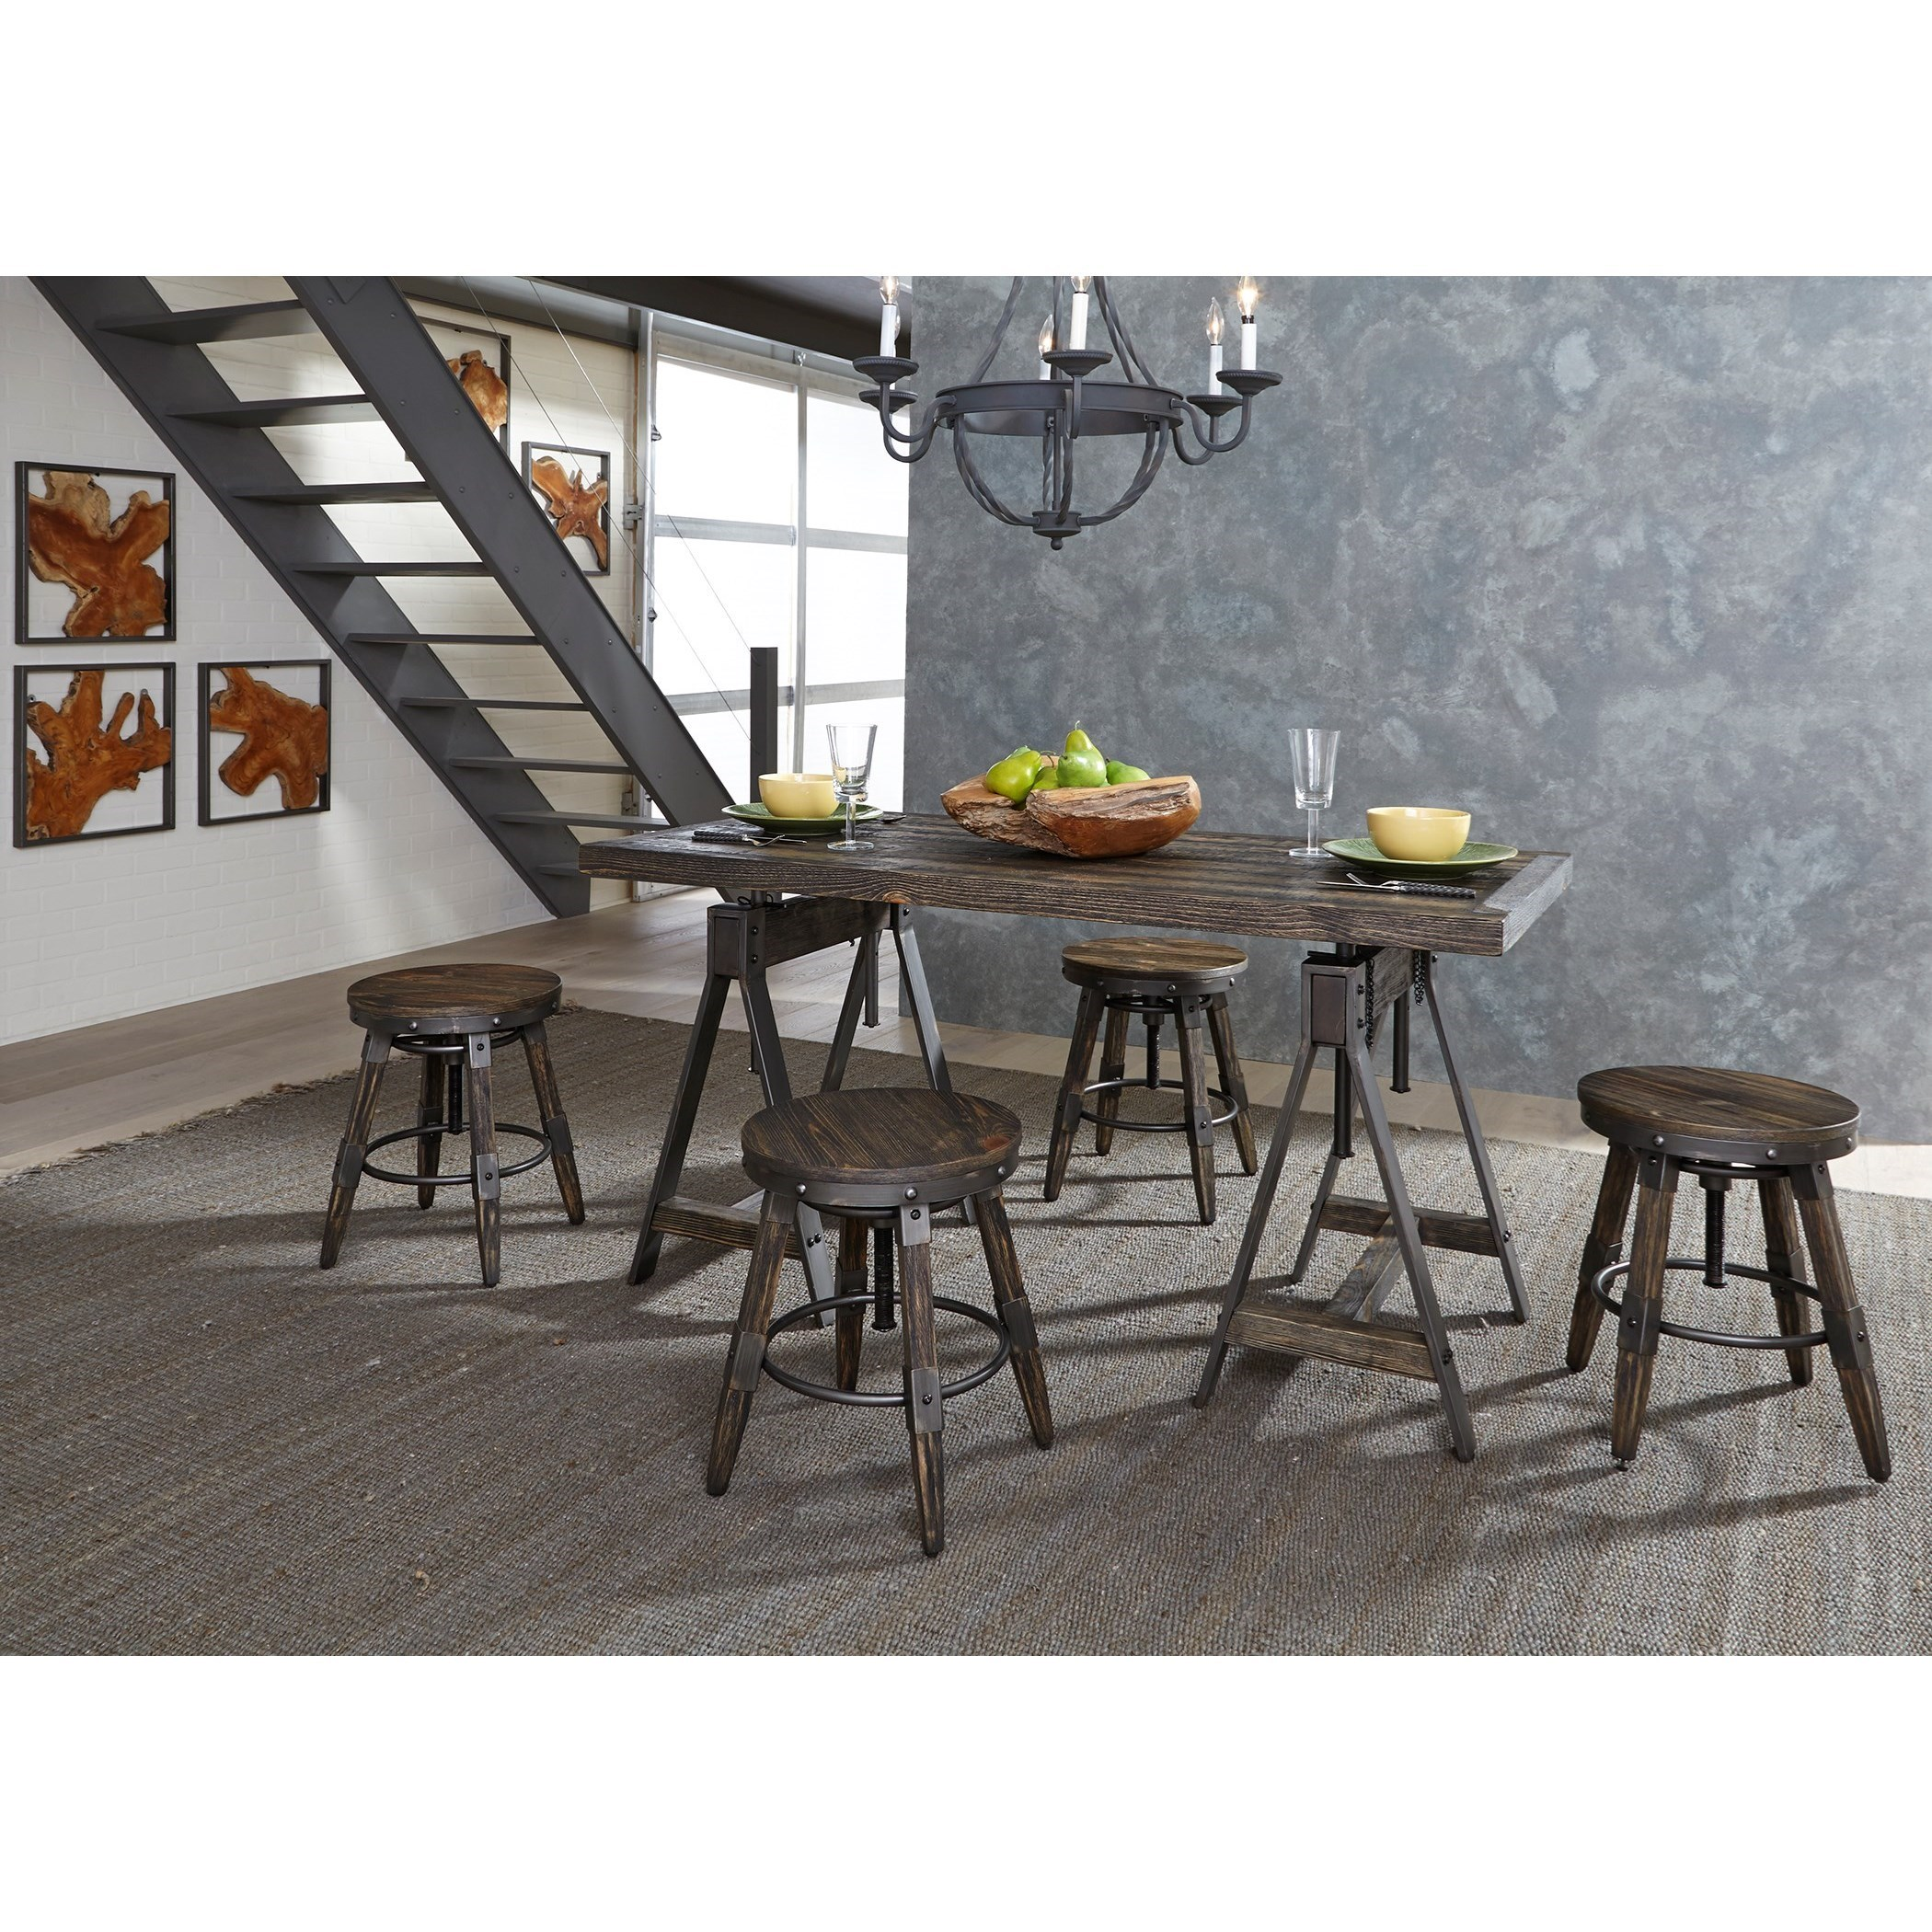 Charmant Liberty Furniture PinevilleAdjustable Height Table And Stool Set